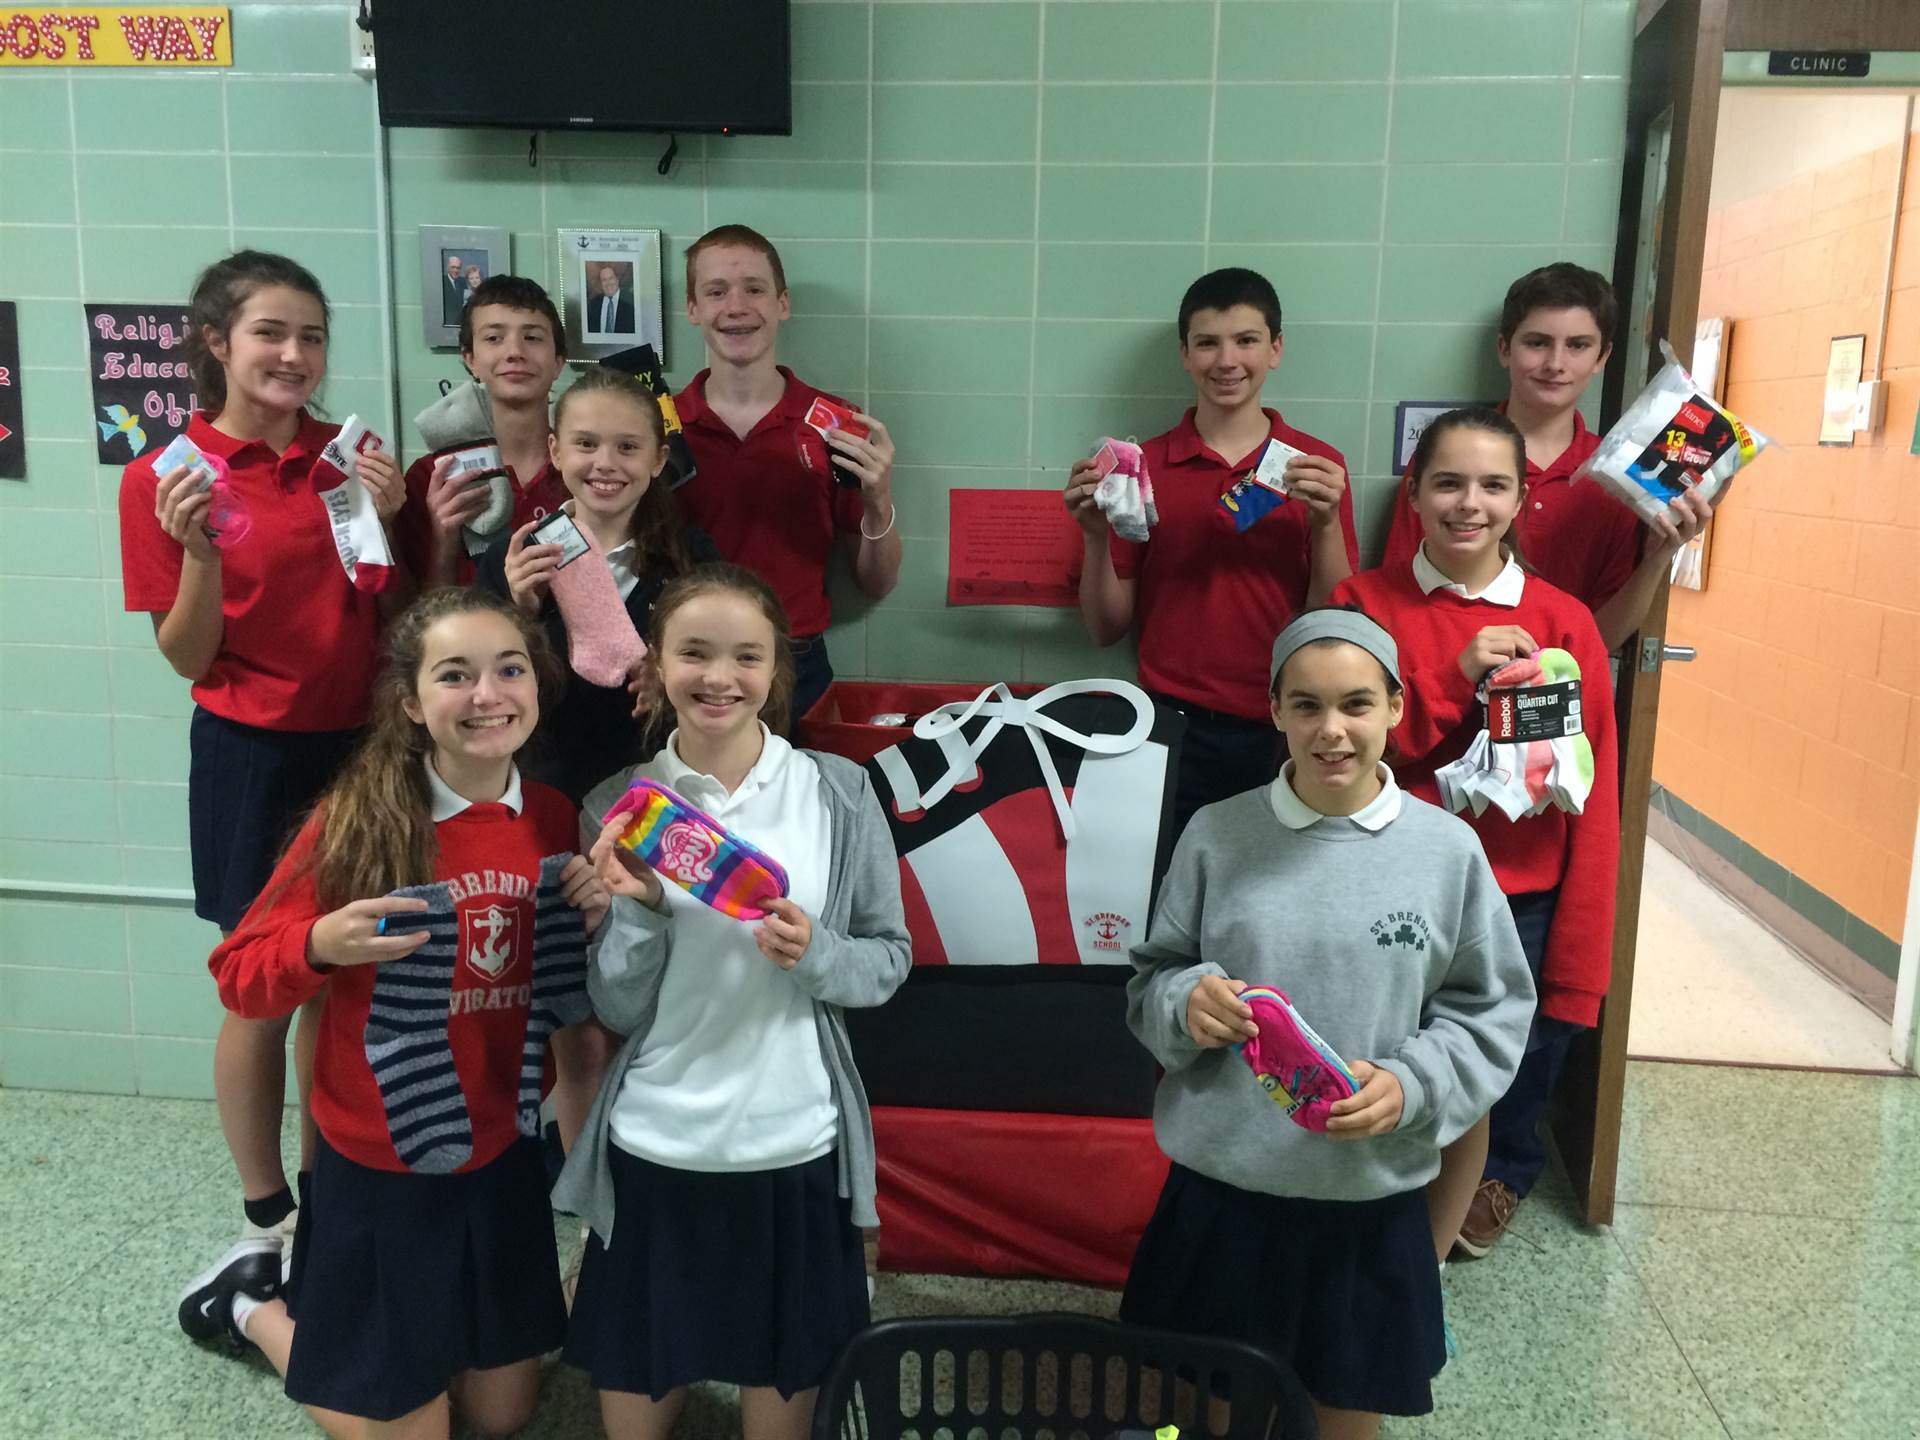 Students pose to promote Socktober. An annual sock collection for the Westside Catholic Center